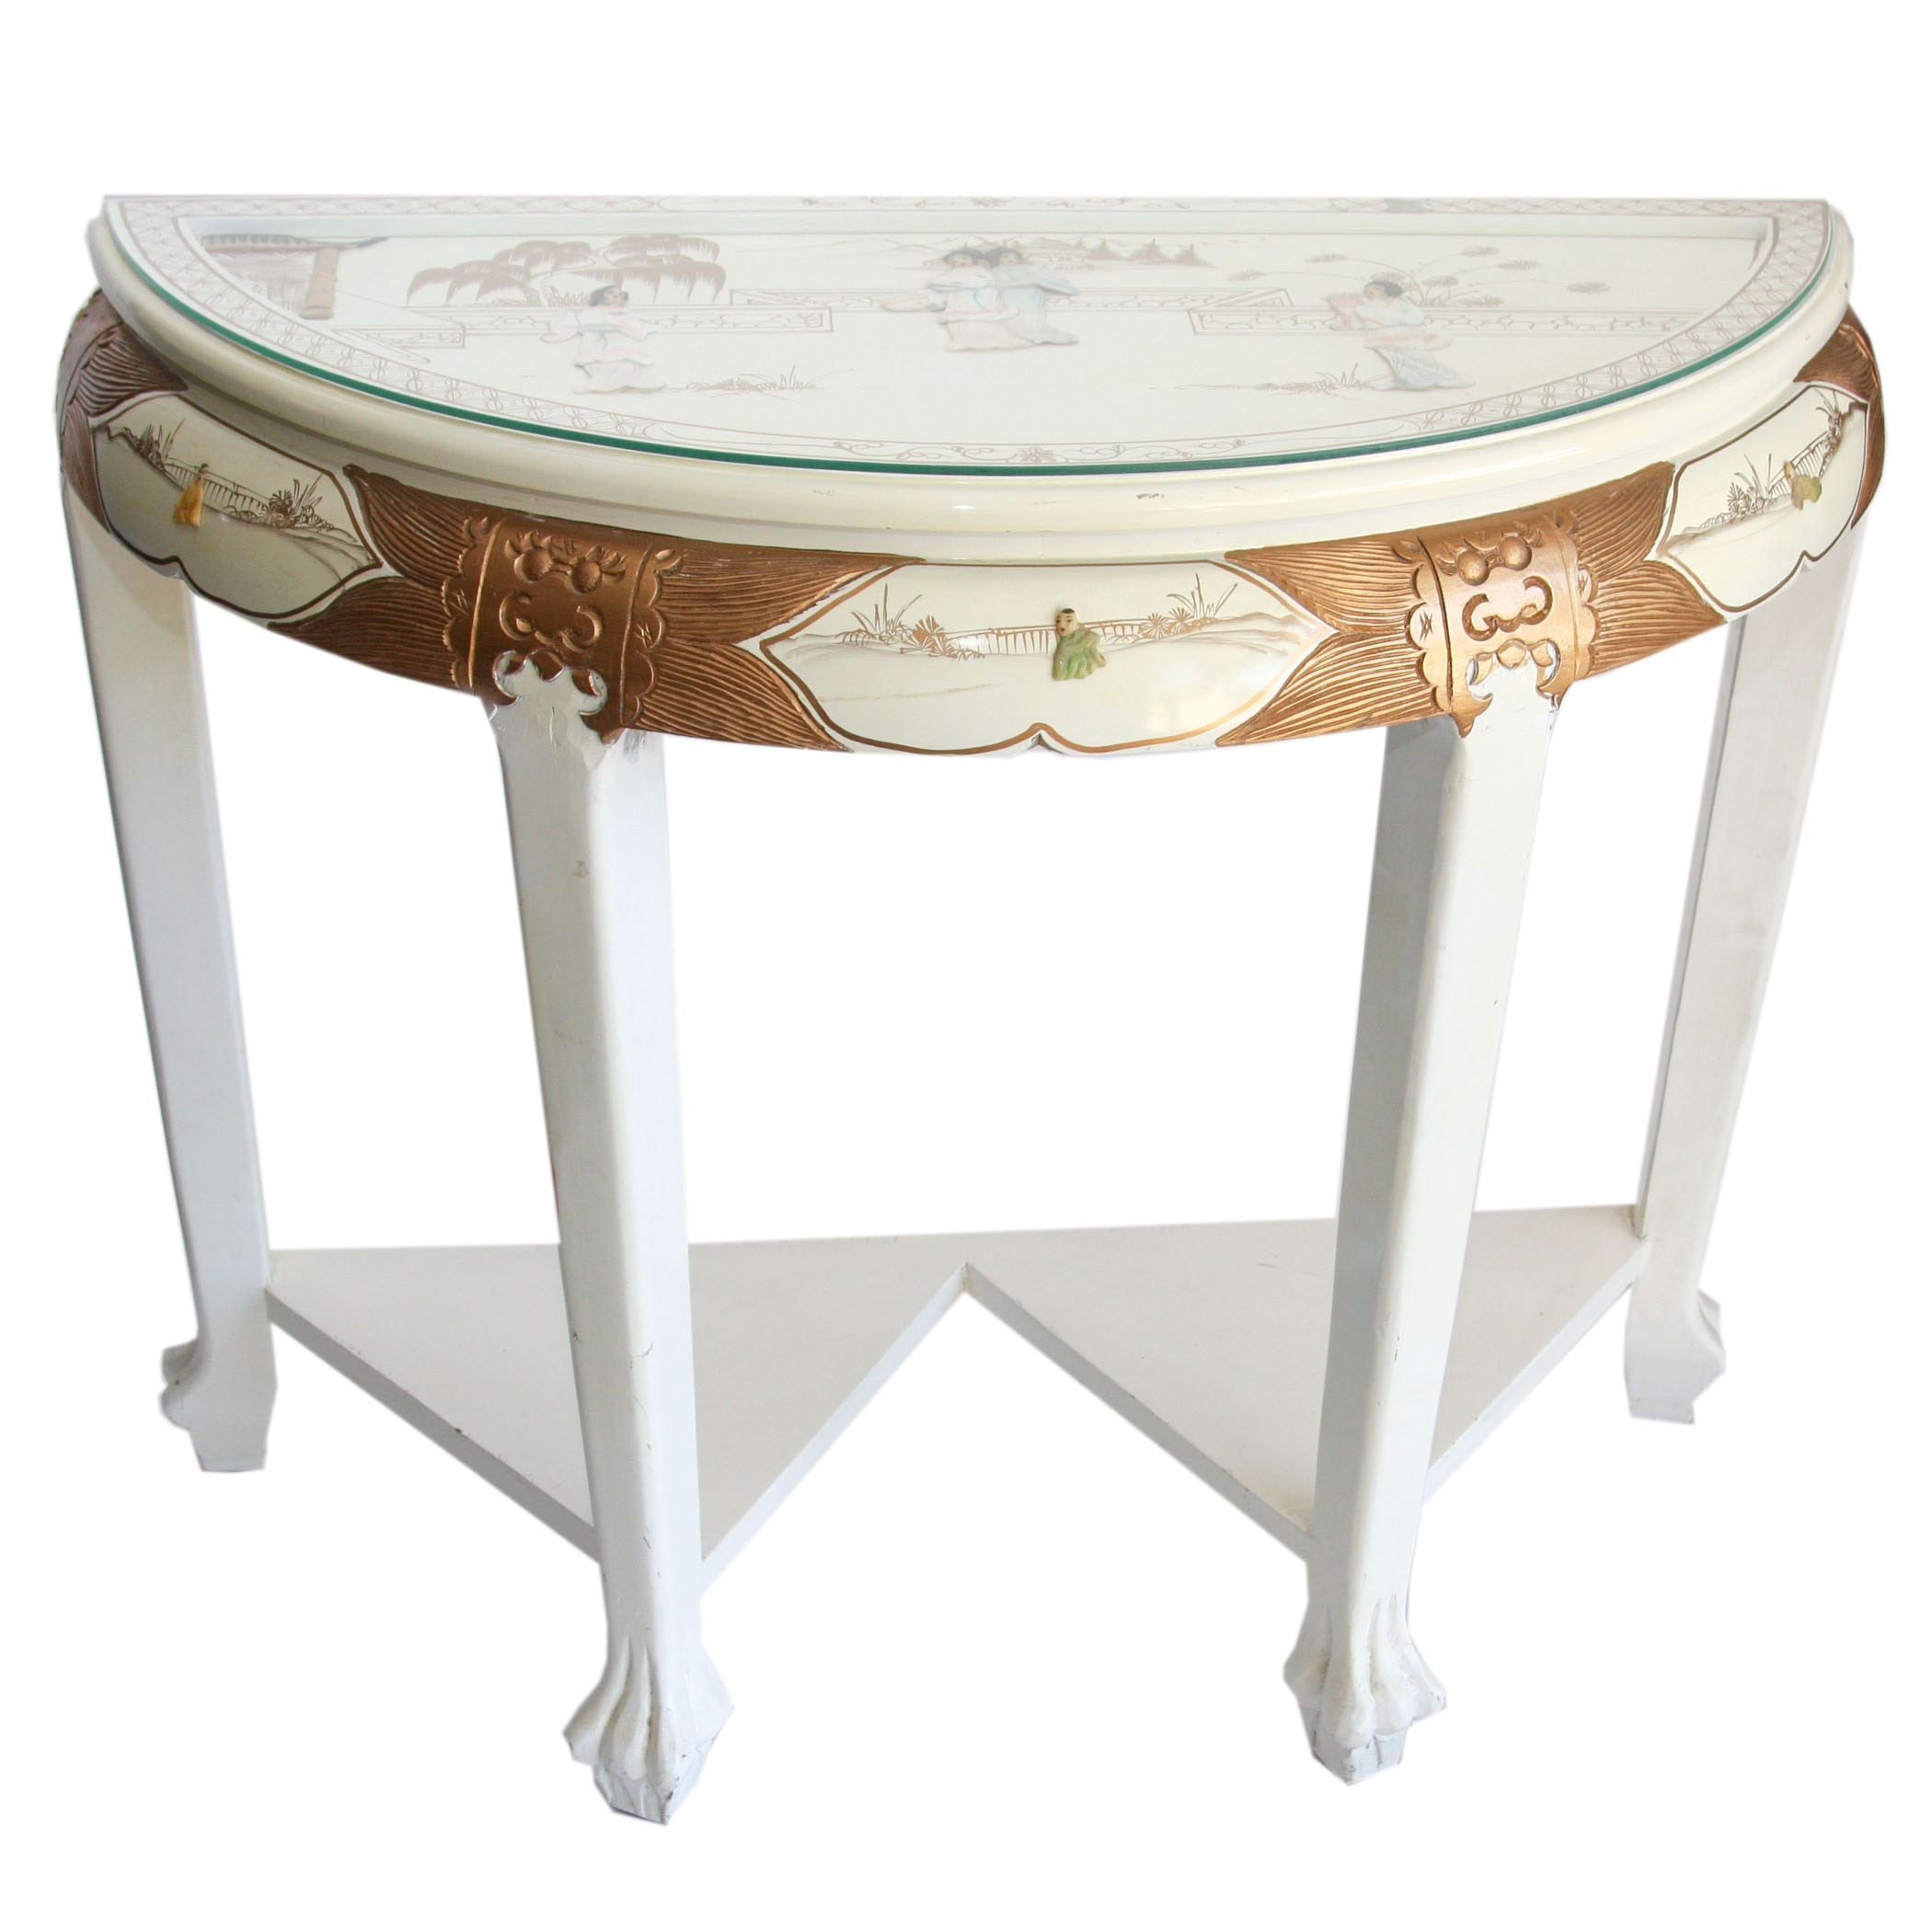 Chinese Inspired Painted Demilune Table